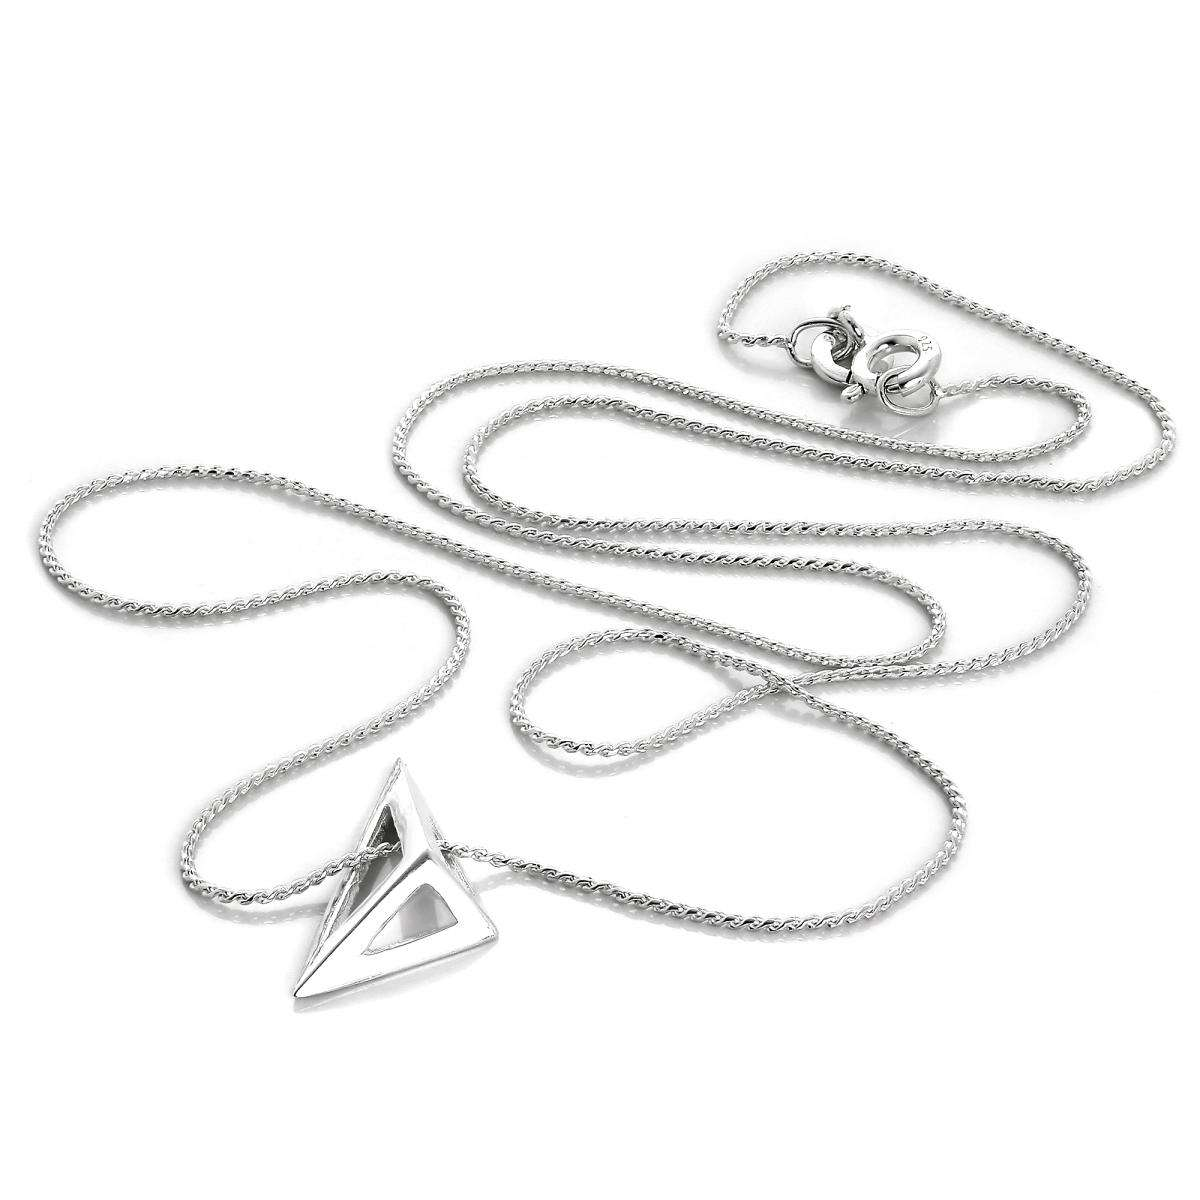 Alterative image for Sterling Silver Open Triangle Necklace on Foxtail Chain